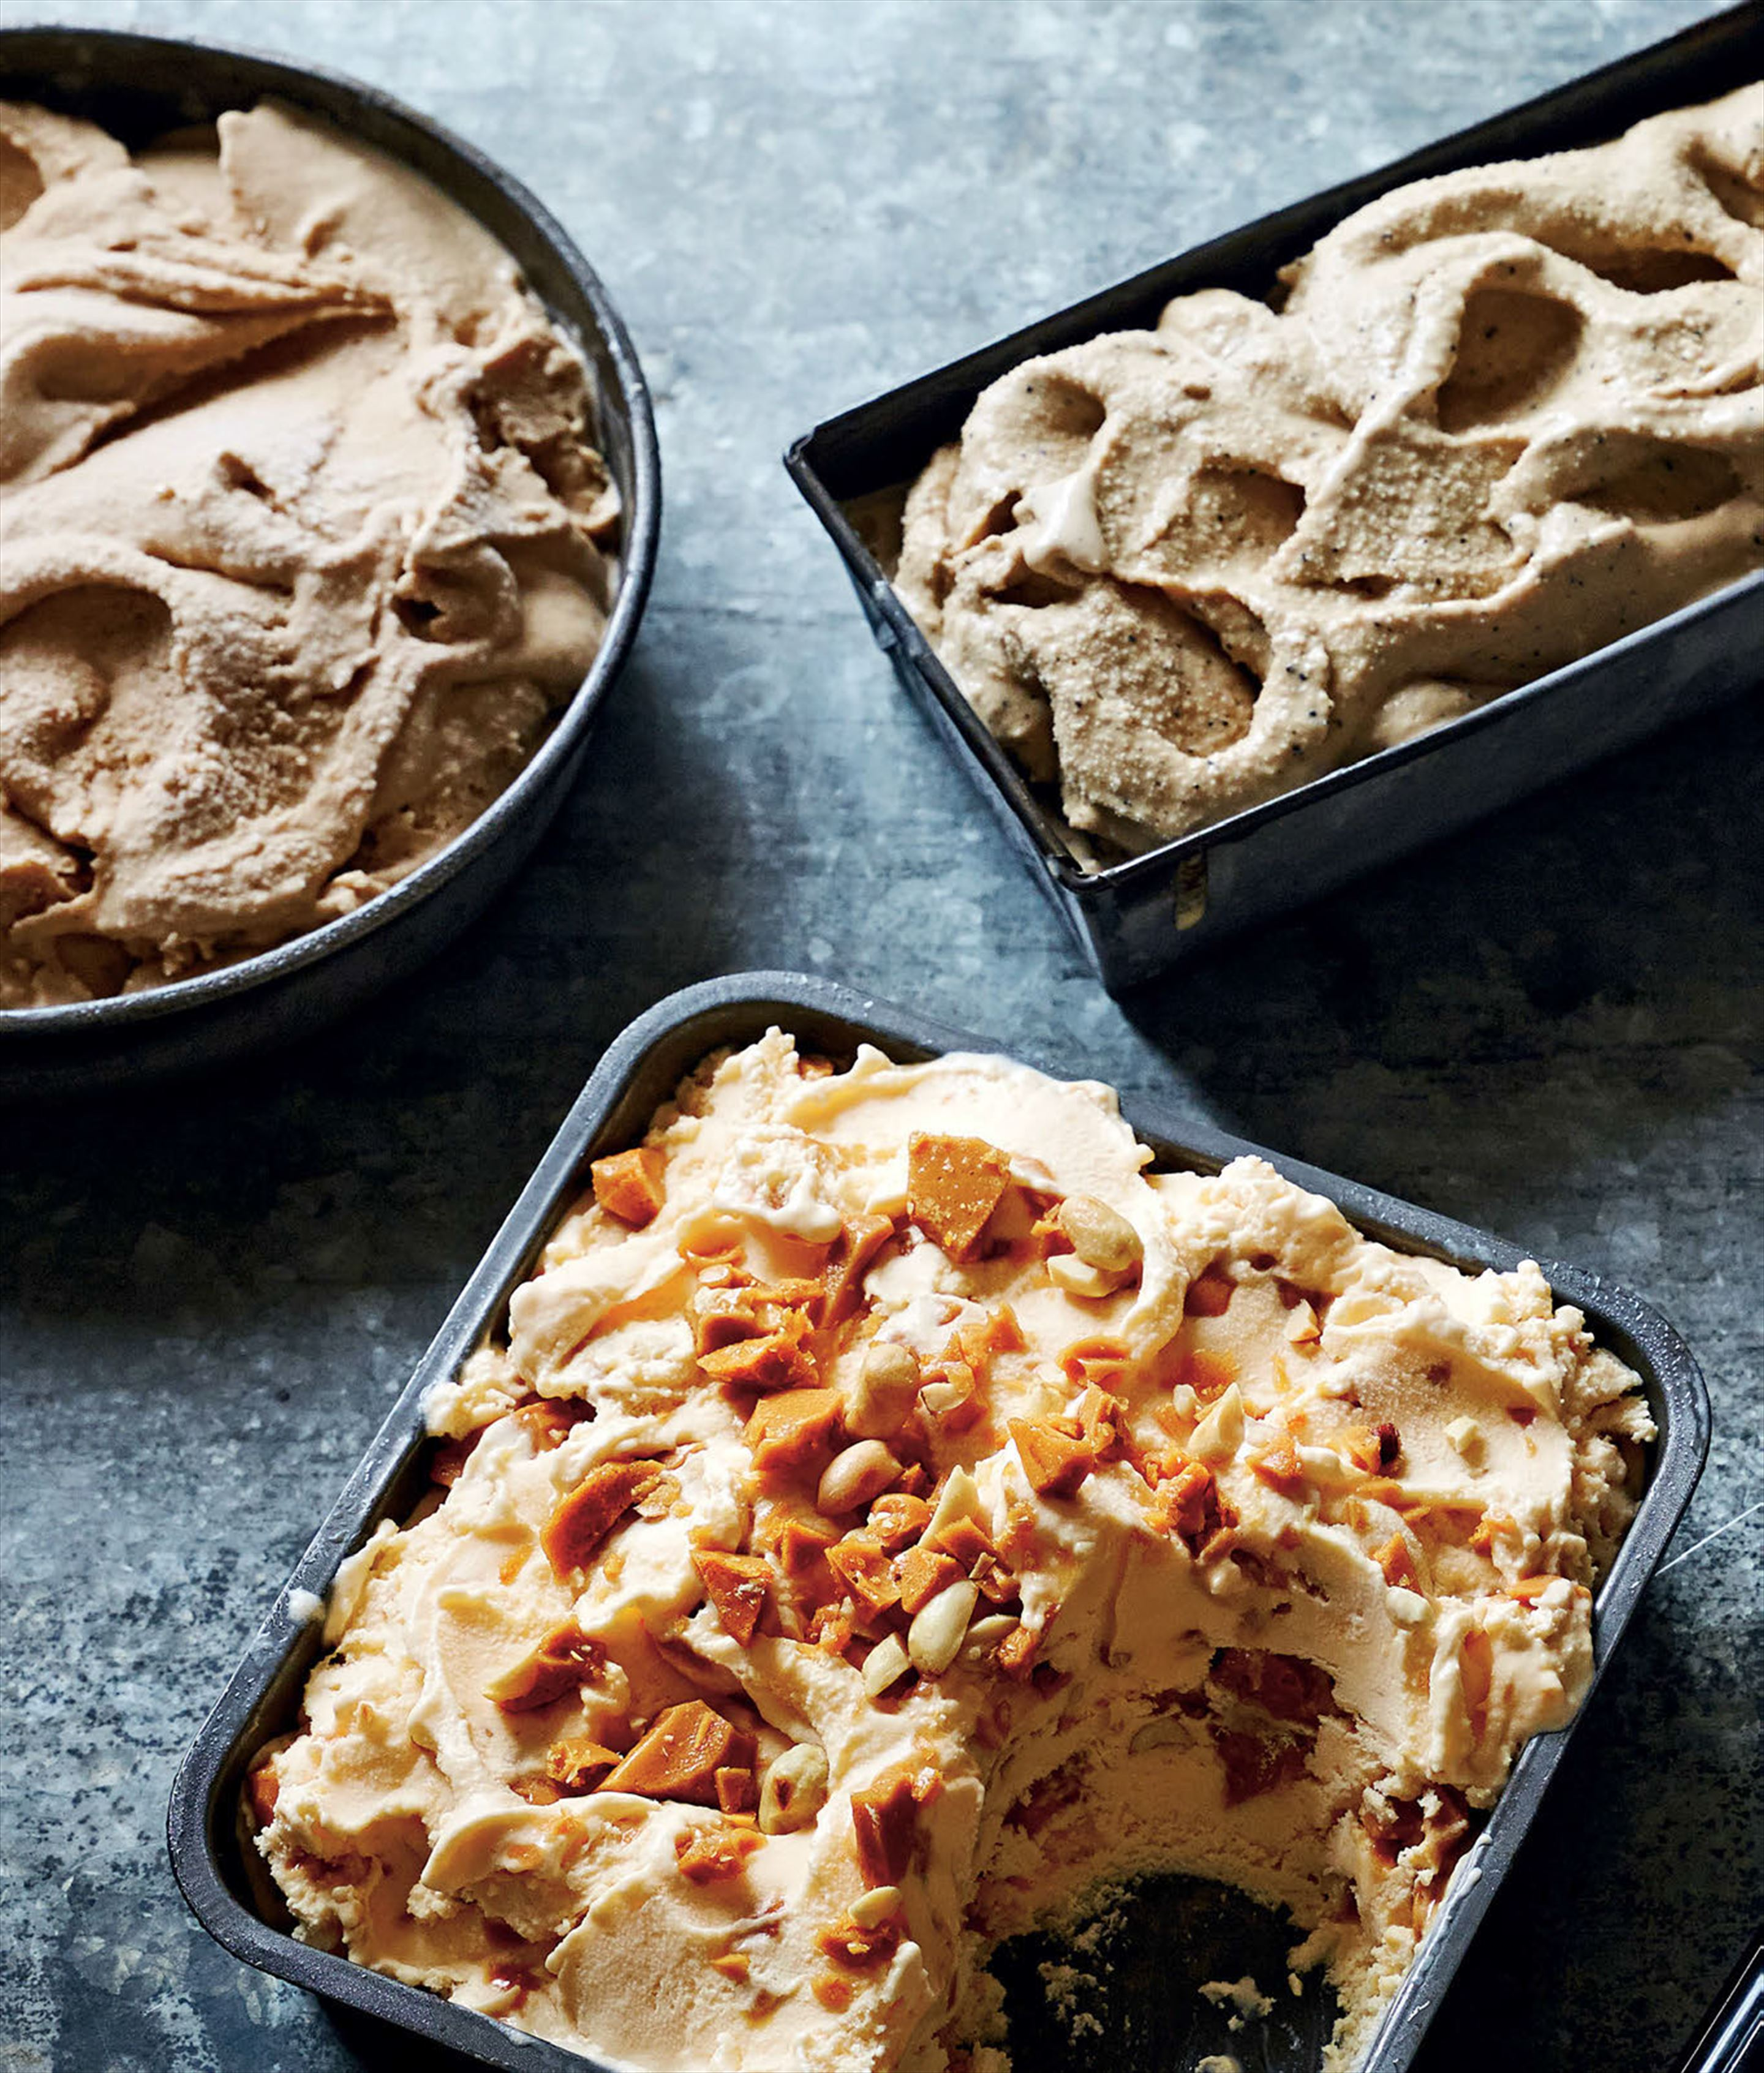 Peanut brittle ice cream